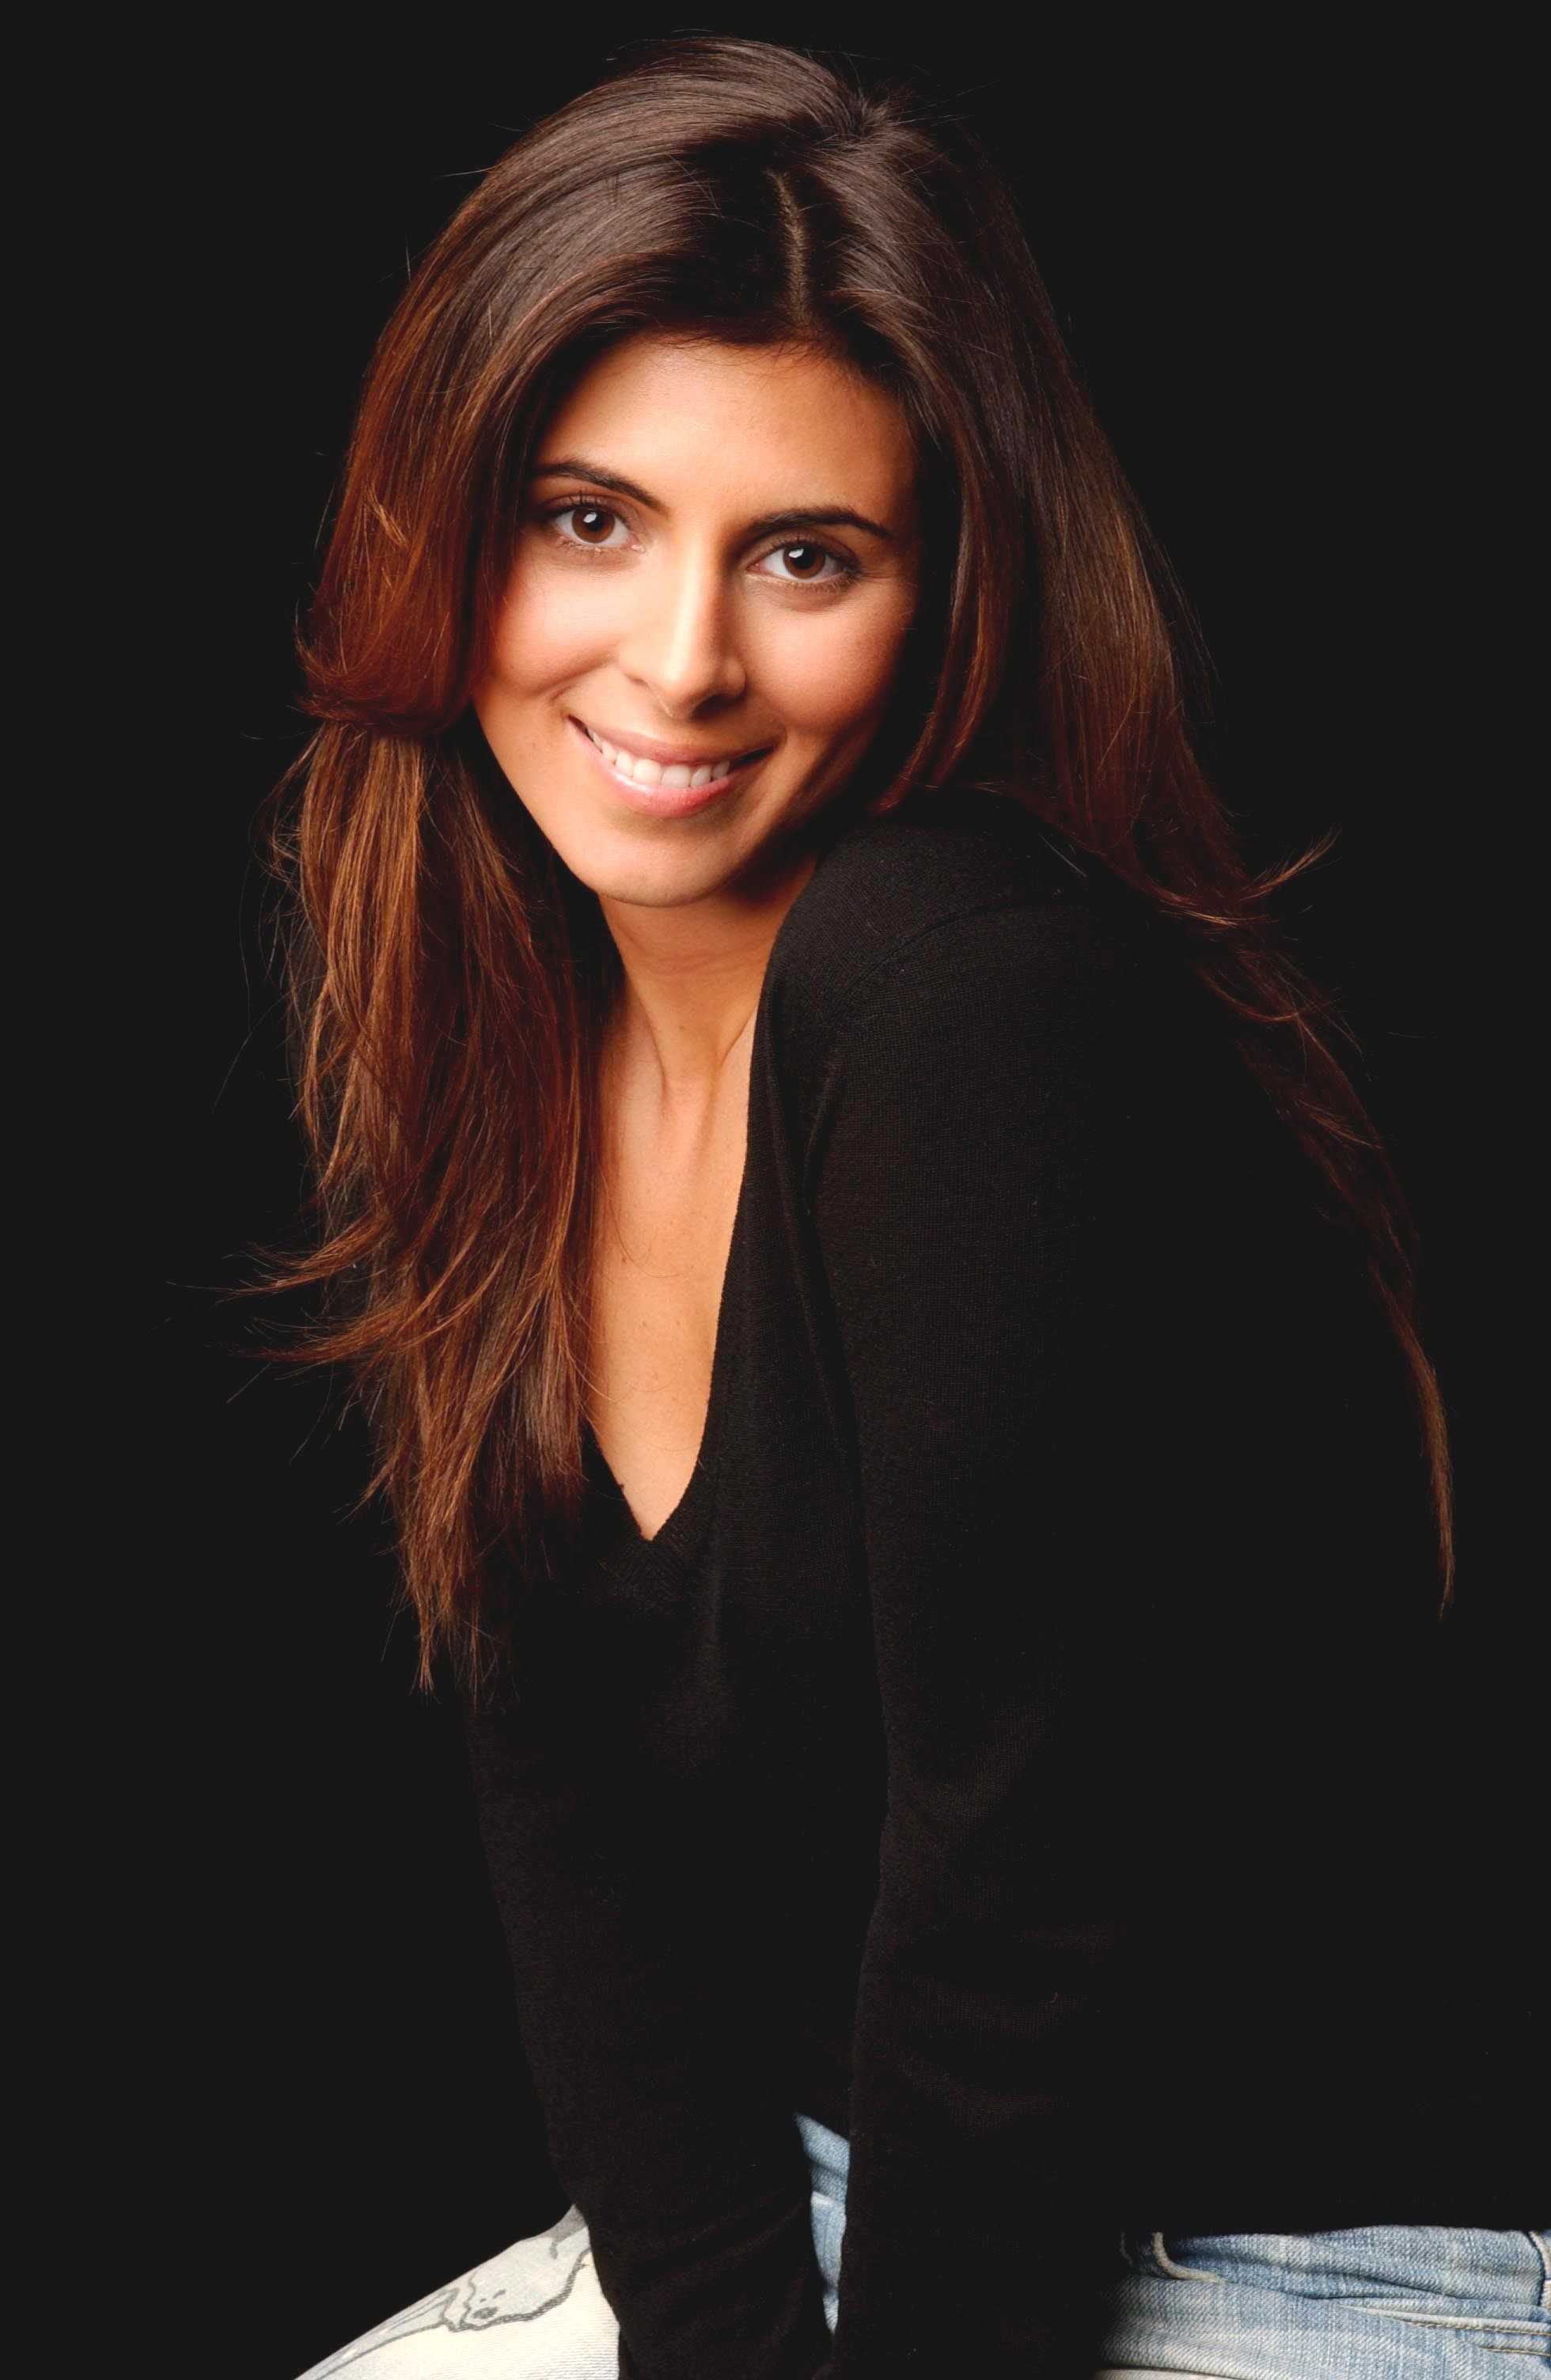 Jericho, New York, USA, 1981-05-15, Jamie-Lynn Sigler